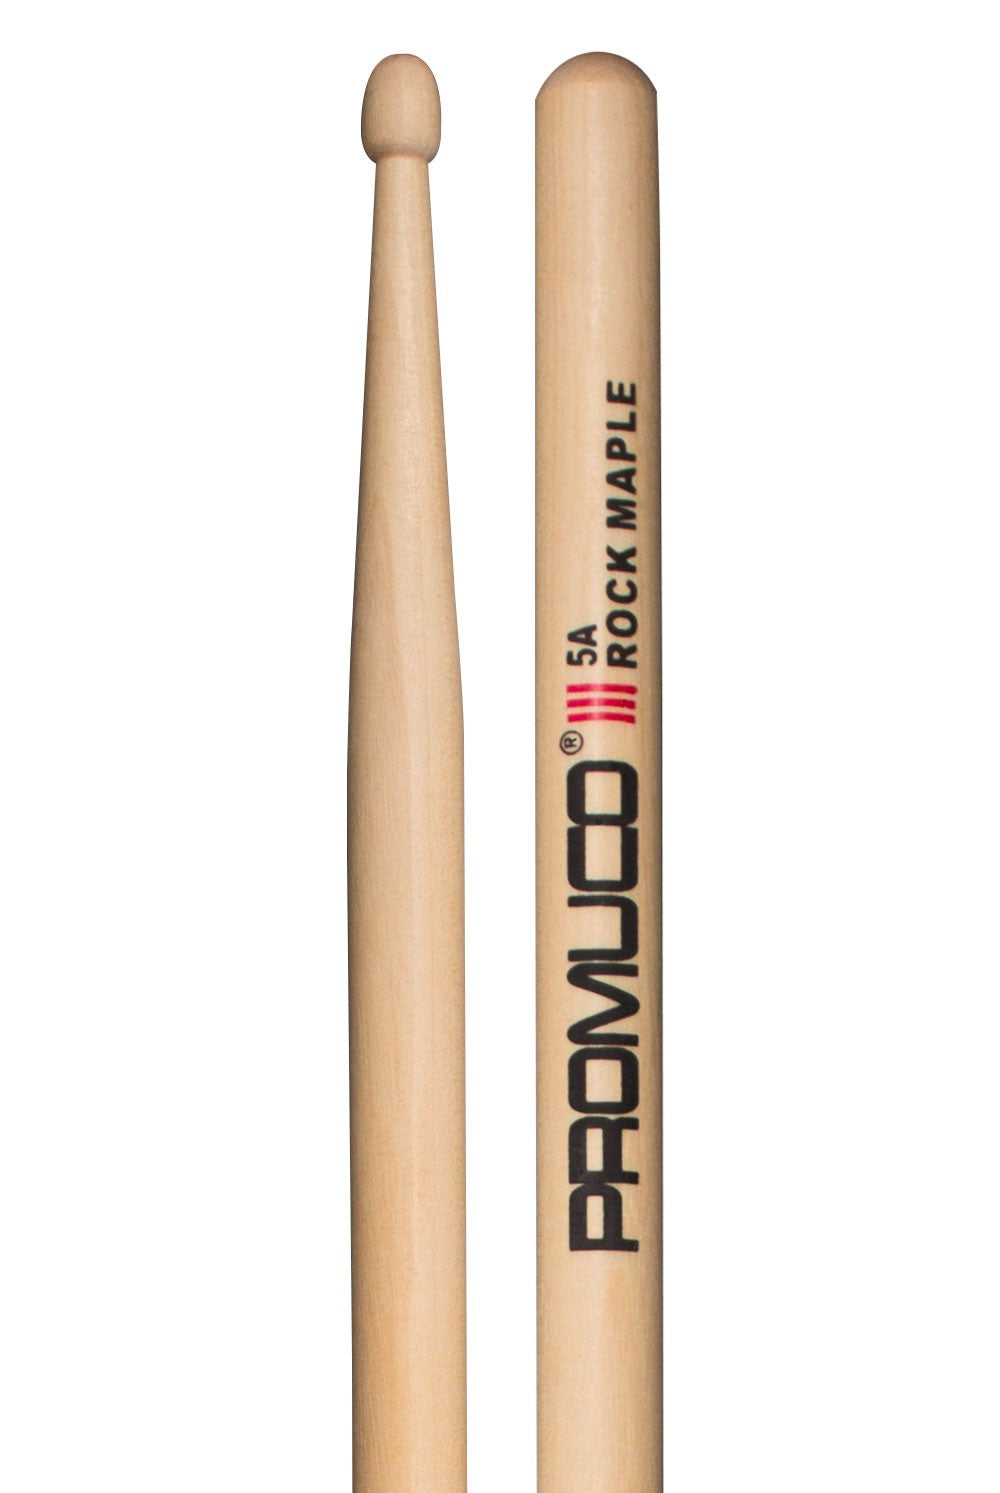 PROMUCO DRUMSTICKS - ROCK MAPLE 5A - Varsity Music Shop